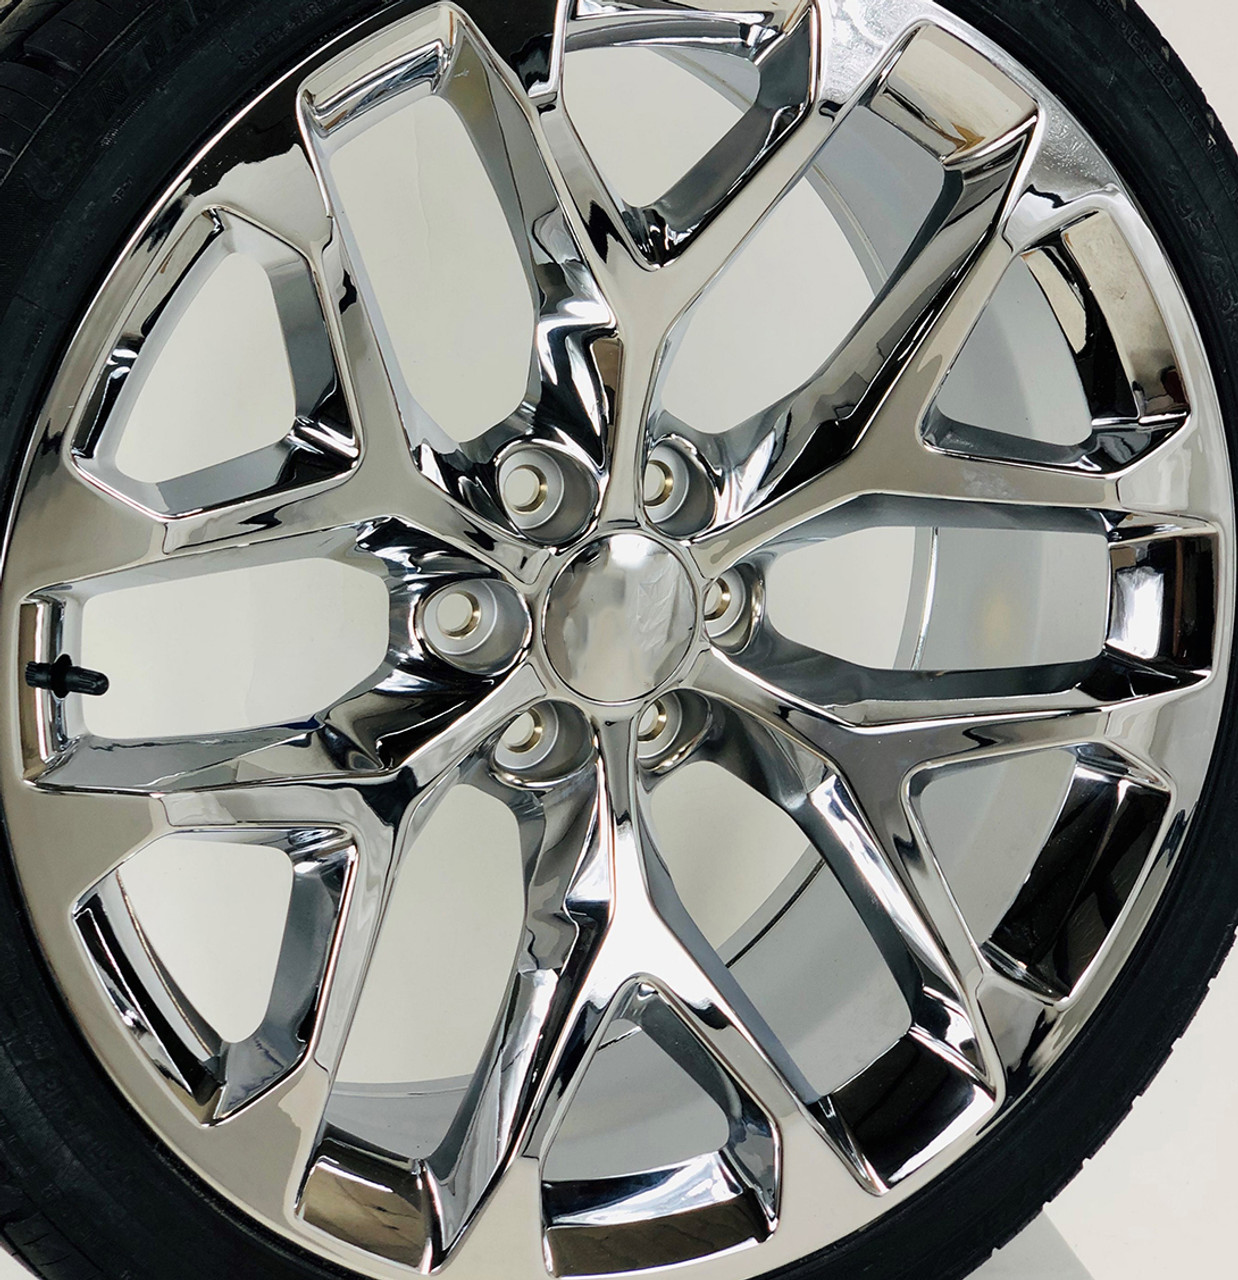 """Chrome 24"""" Snowflake Wheels with 305/35R24 Nitto Terra Grappler Tires for Chevy and GMC Trucks and SUVs"""